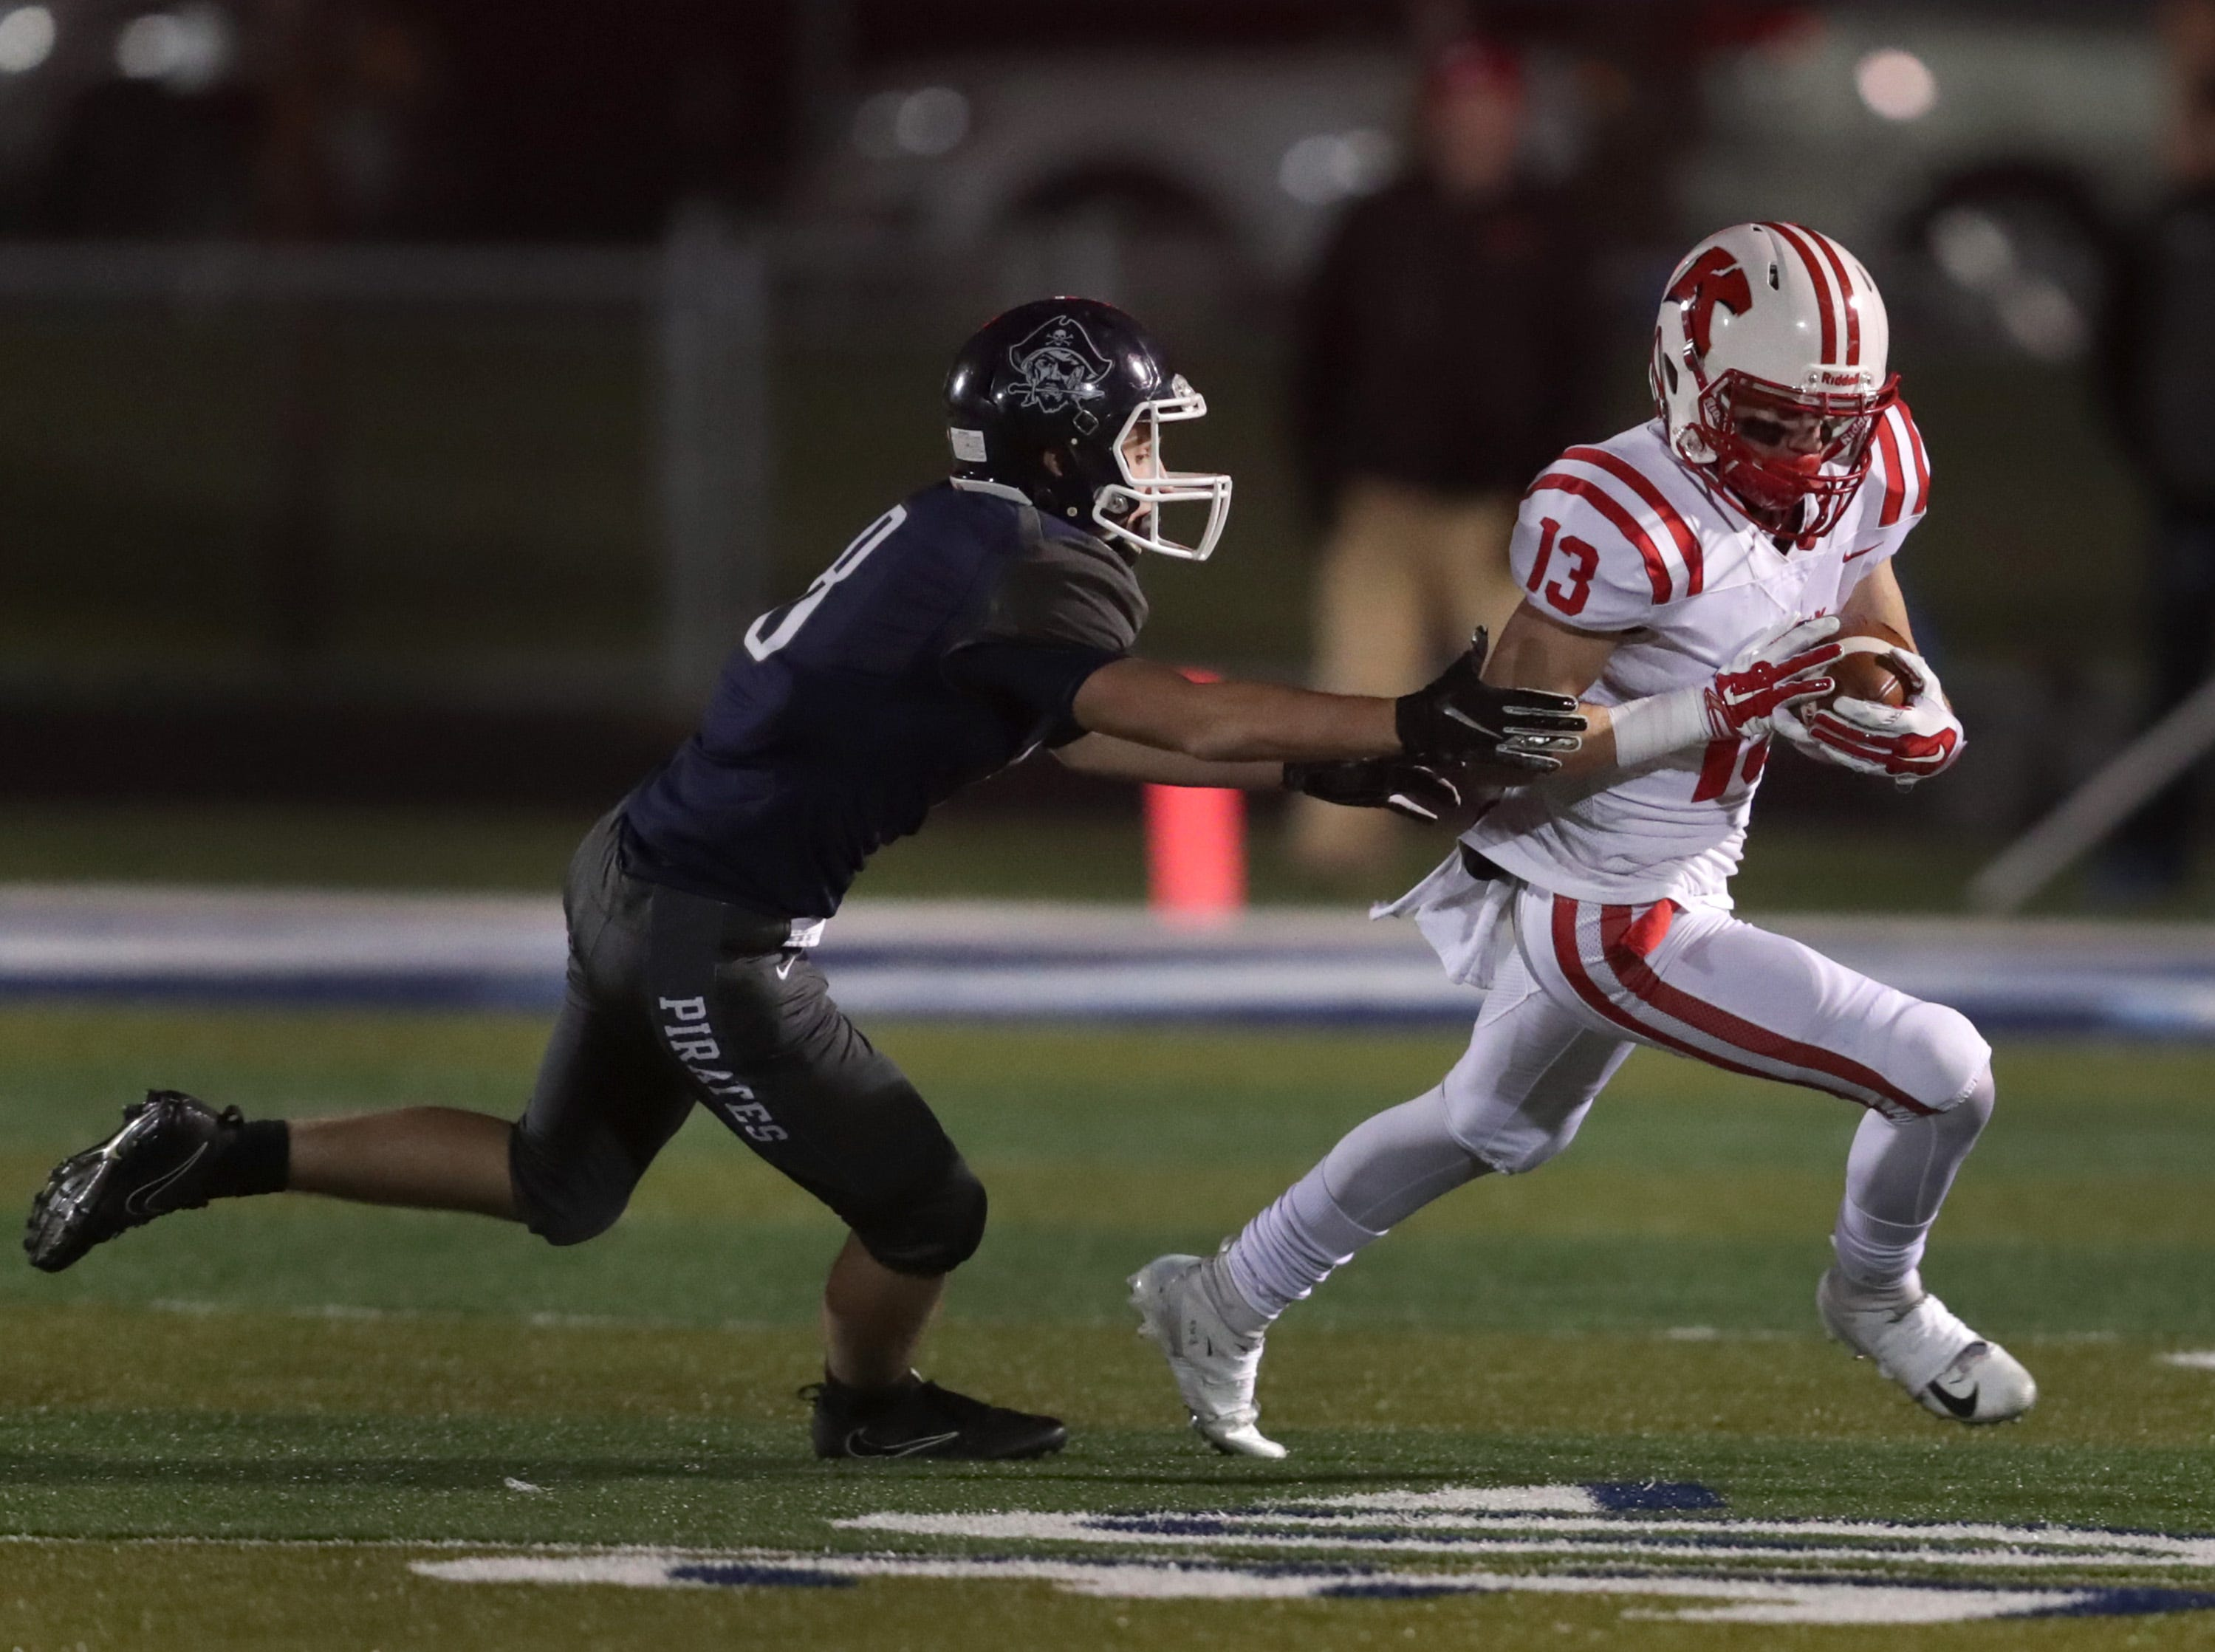 Kimberly High School's #13 Zach Lechnir against Bay Port High School's #9 Jayden Montgomery during their WIAA Division 1 state quarterfinal football game on Friday, November 2, 2018, in Suamico, Wis.  Kimberly defeated Bay Port 38 to 20. Wm. Glasheen/USA TODAY NETWORK-Wisconsin.